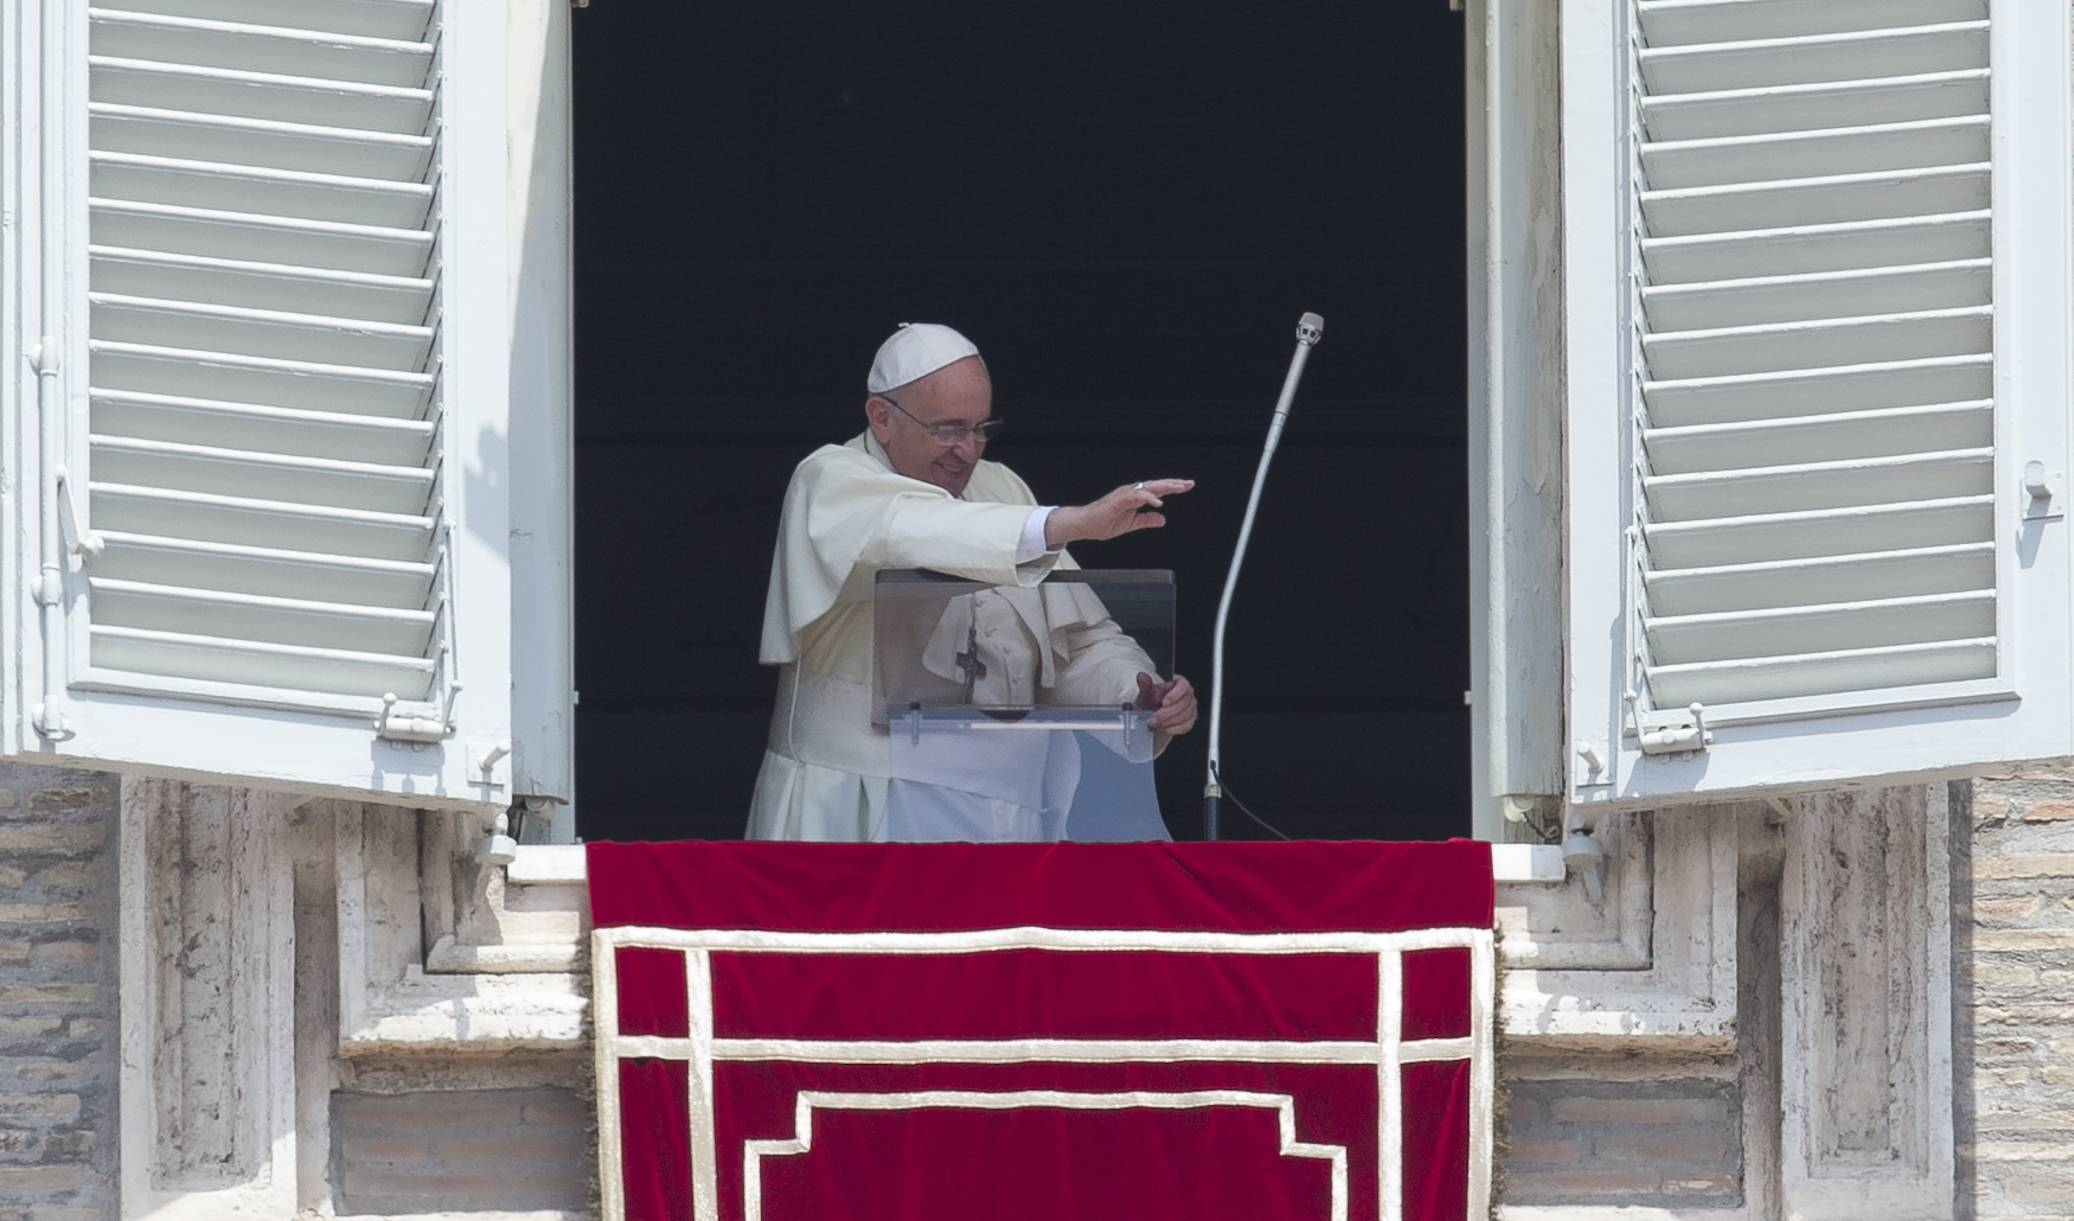 Pope Francis may undertake his first trip to the U.S. next year to attend the World Meeting of Families scheduled to take place in Philadelphia in September 2015.